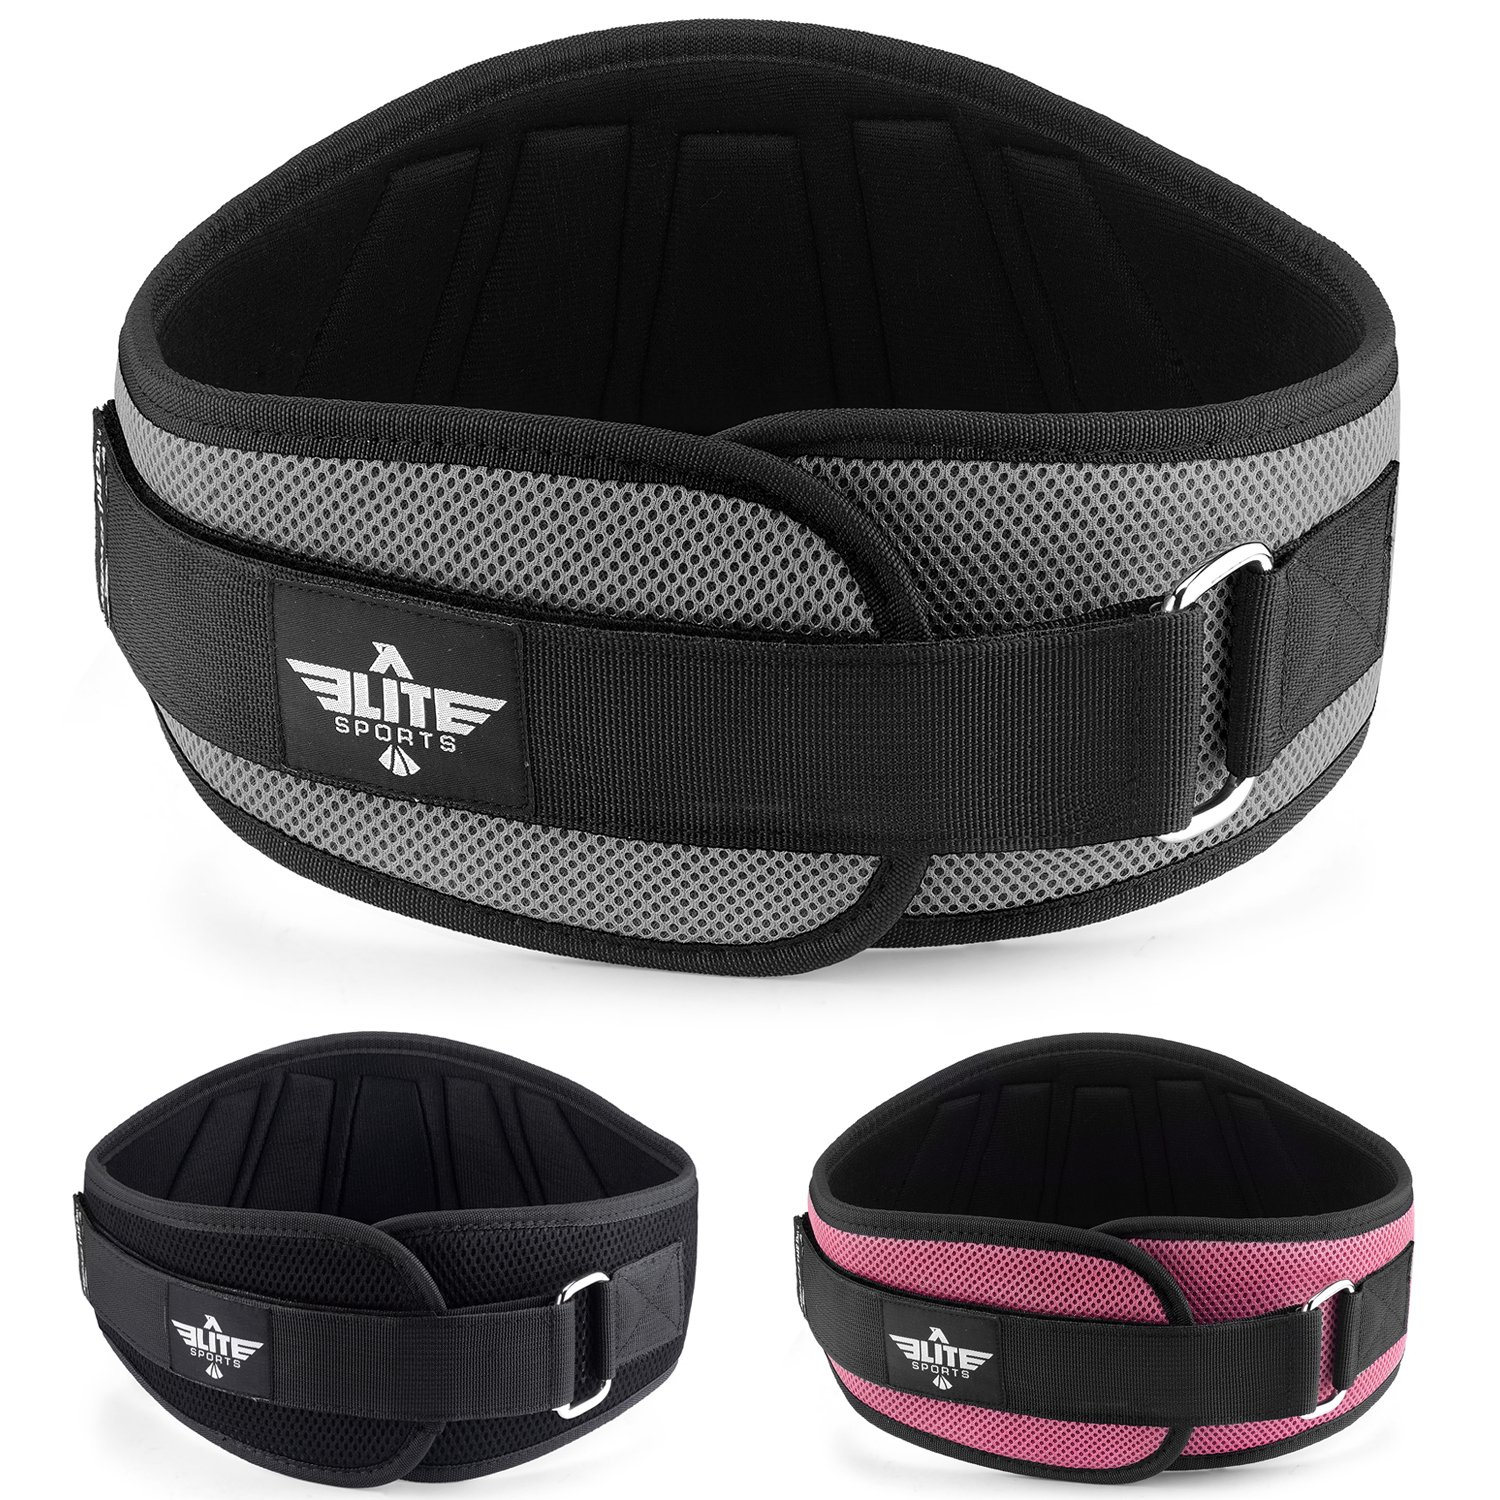 Elite Sports New Item Back Support for Men and Women, Olympic Lifting, and Weight Lifting Belt (Grey, X-Small)